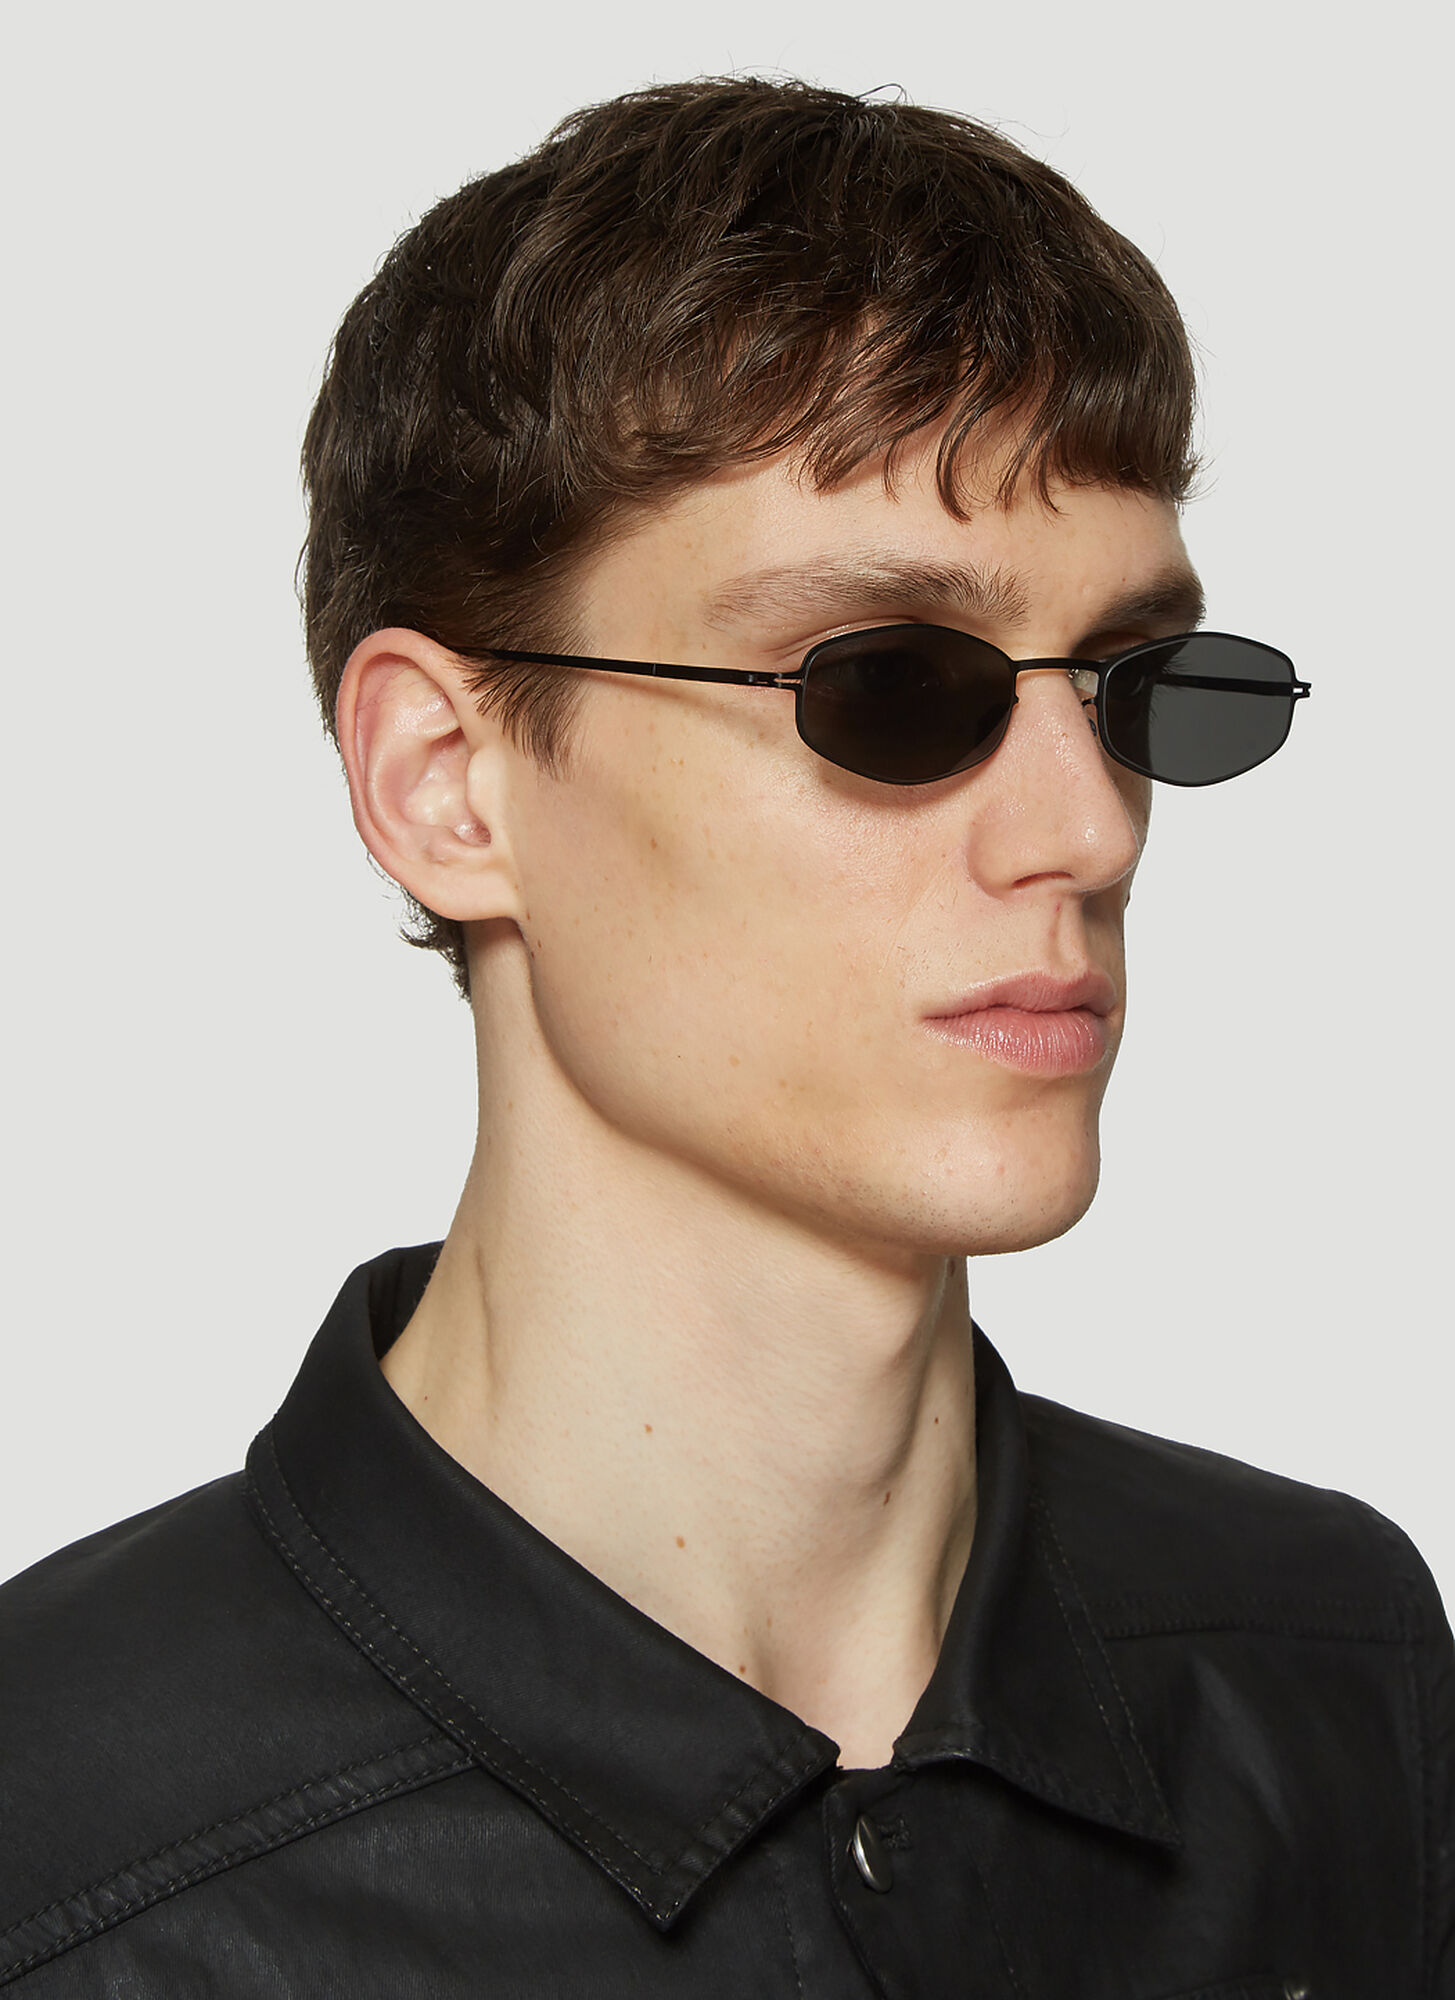 Mykita X Bernhard Willhelm Sunglasses in Black size One Size